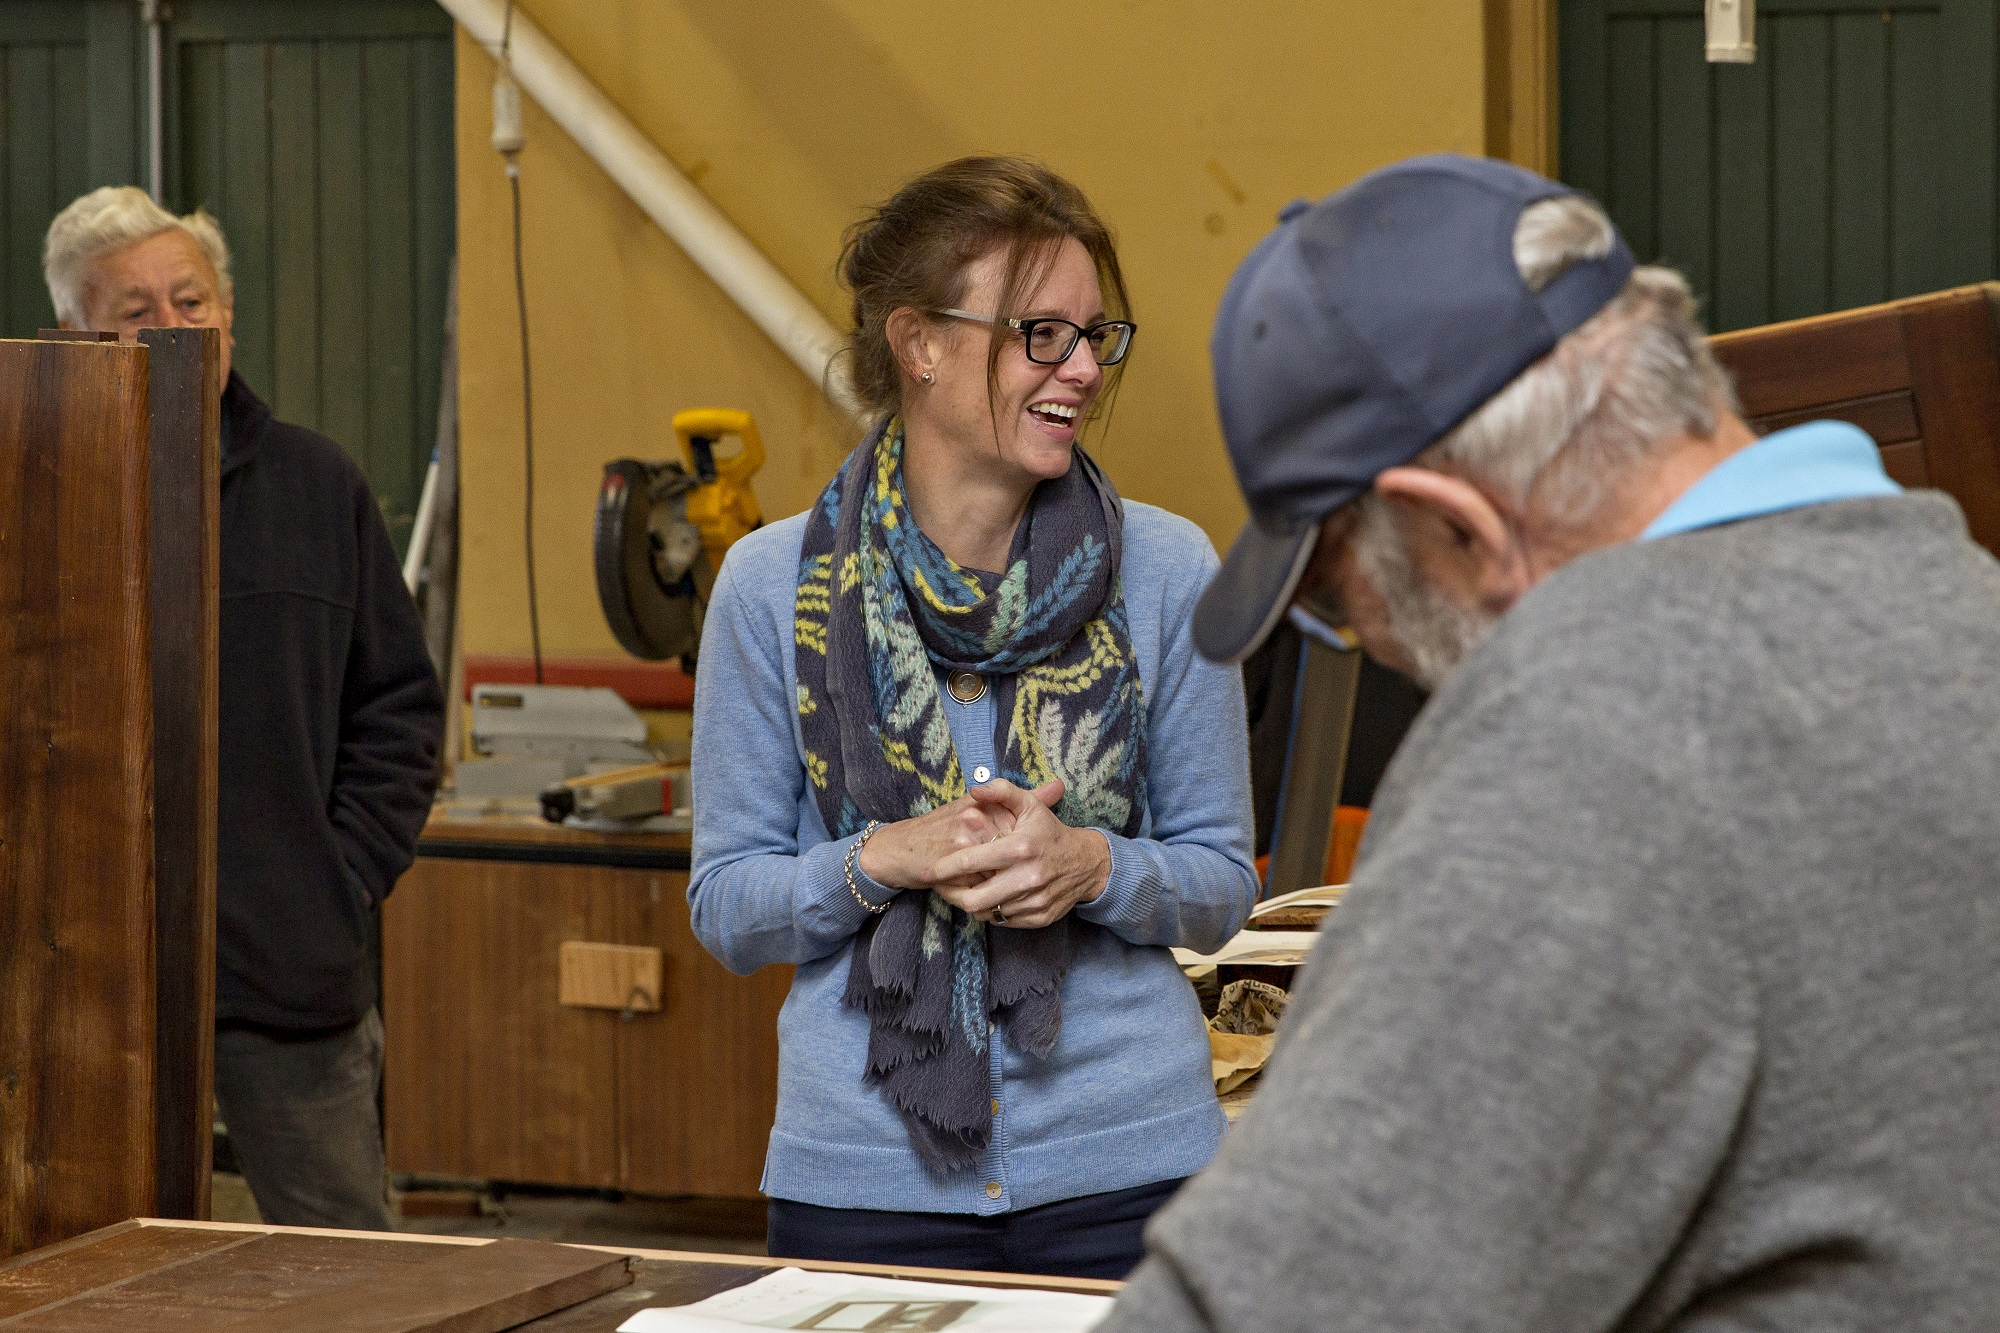 Steph Cooke looks to the right and laughs. In the foreground is a grey-haired man with a cap on who faces away from the camera.